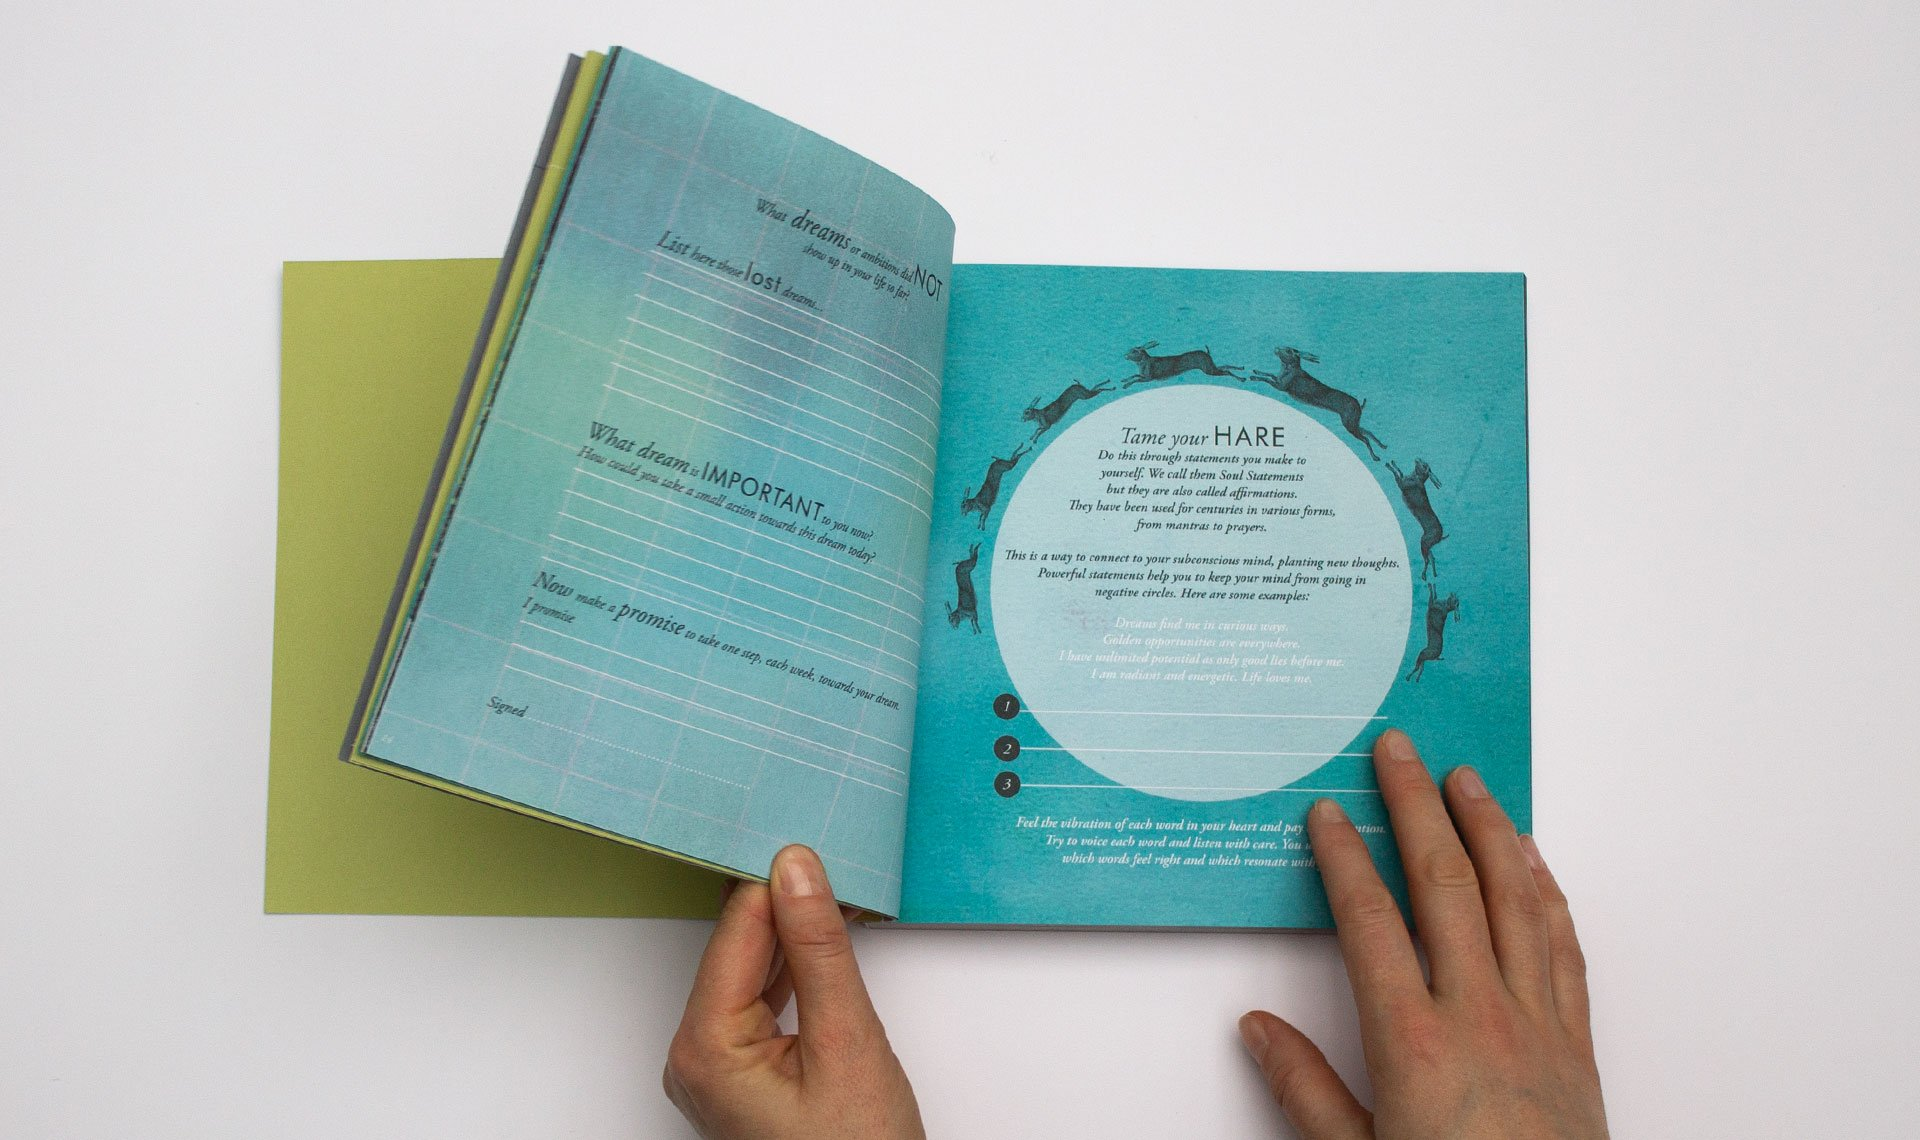 Inbetween Book animation of hands flicking though the book